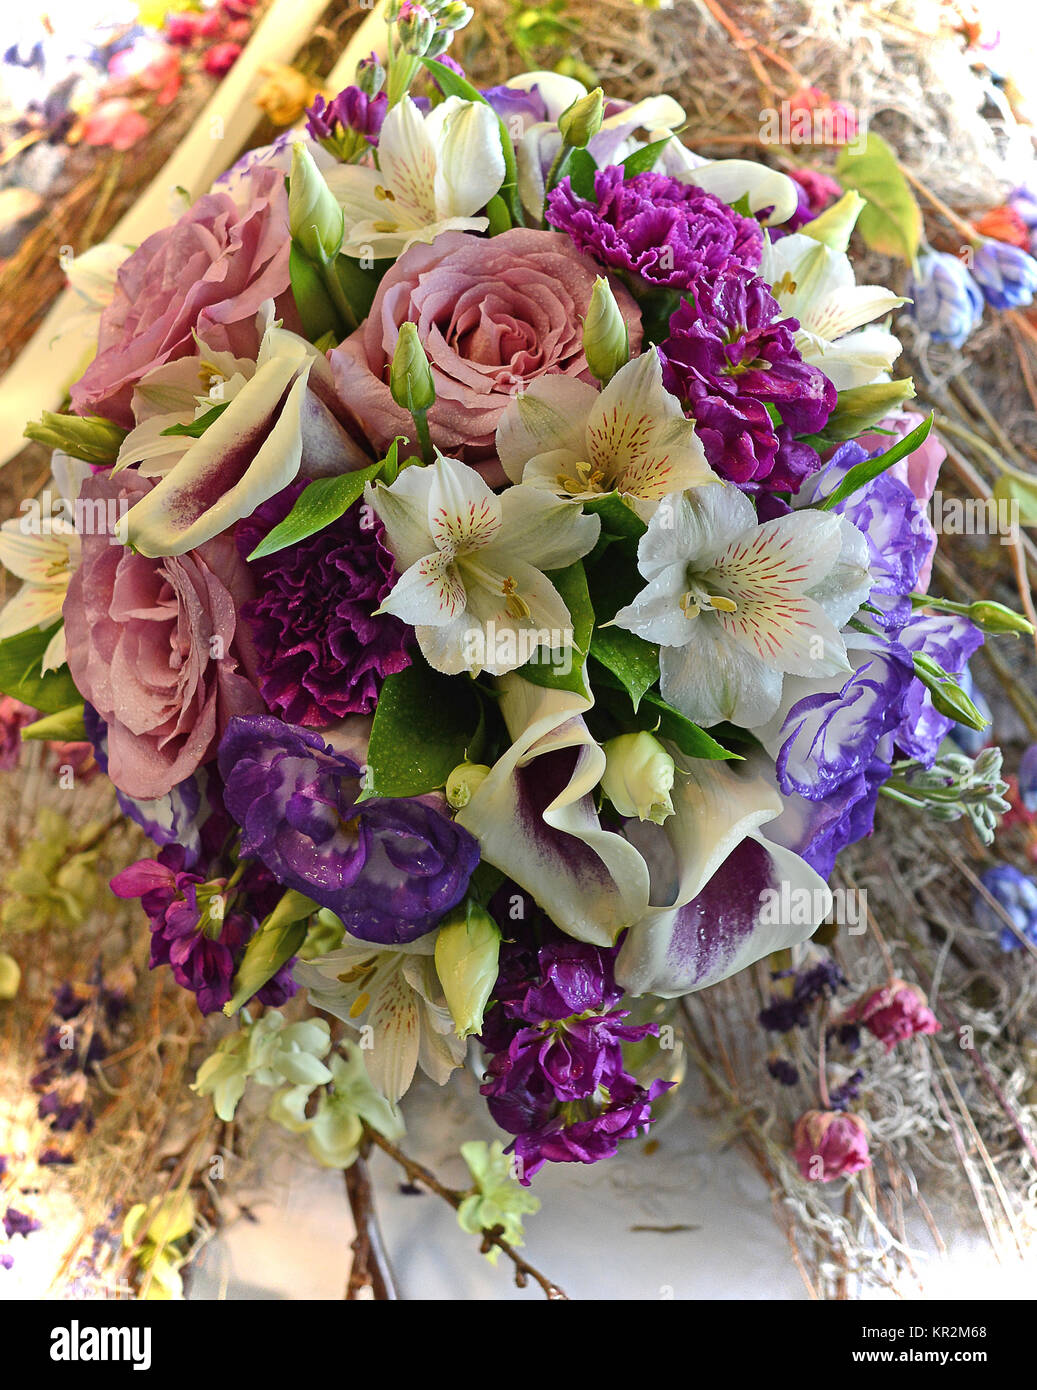 Photo of a colorful nosegay bridal bouquet stuffed with purple calla lilies, rose Lisianthus, pink roses, alstroemeria, - Stock Image